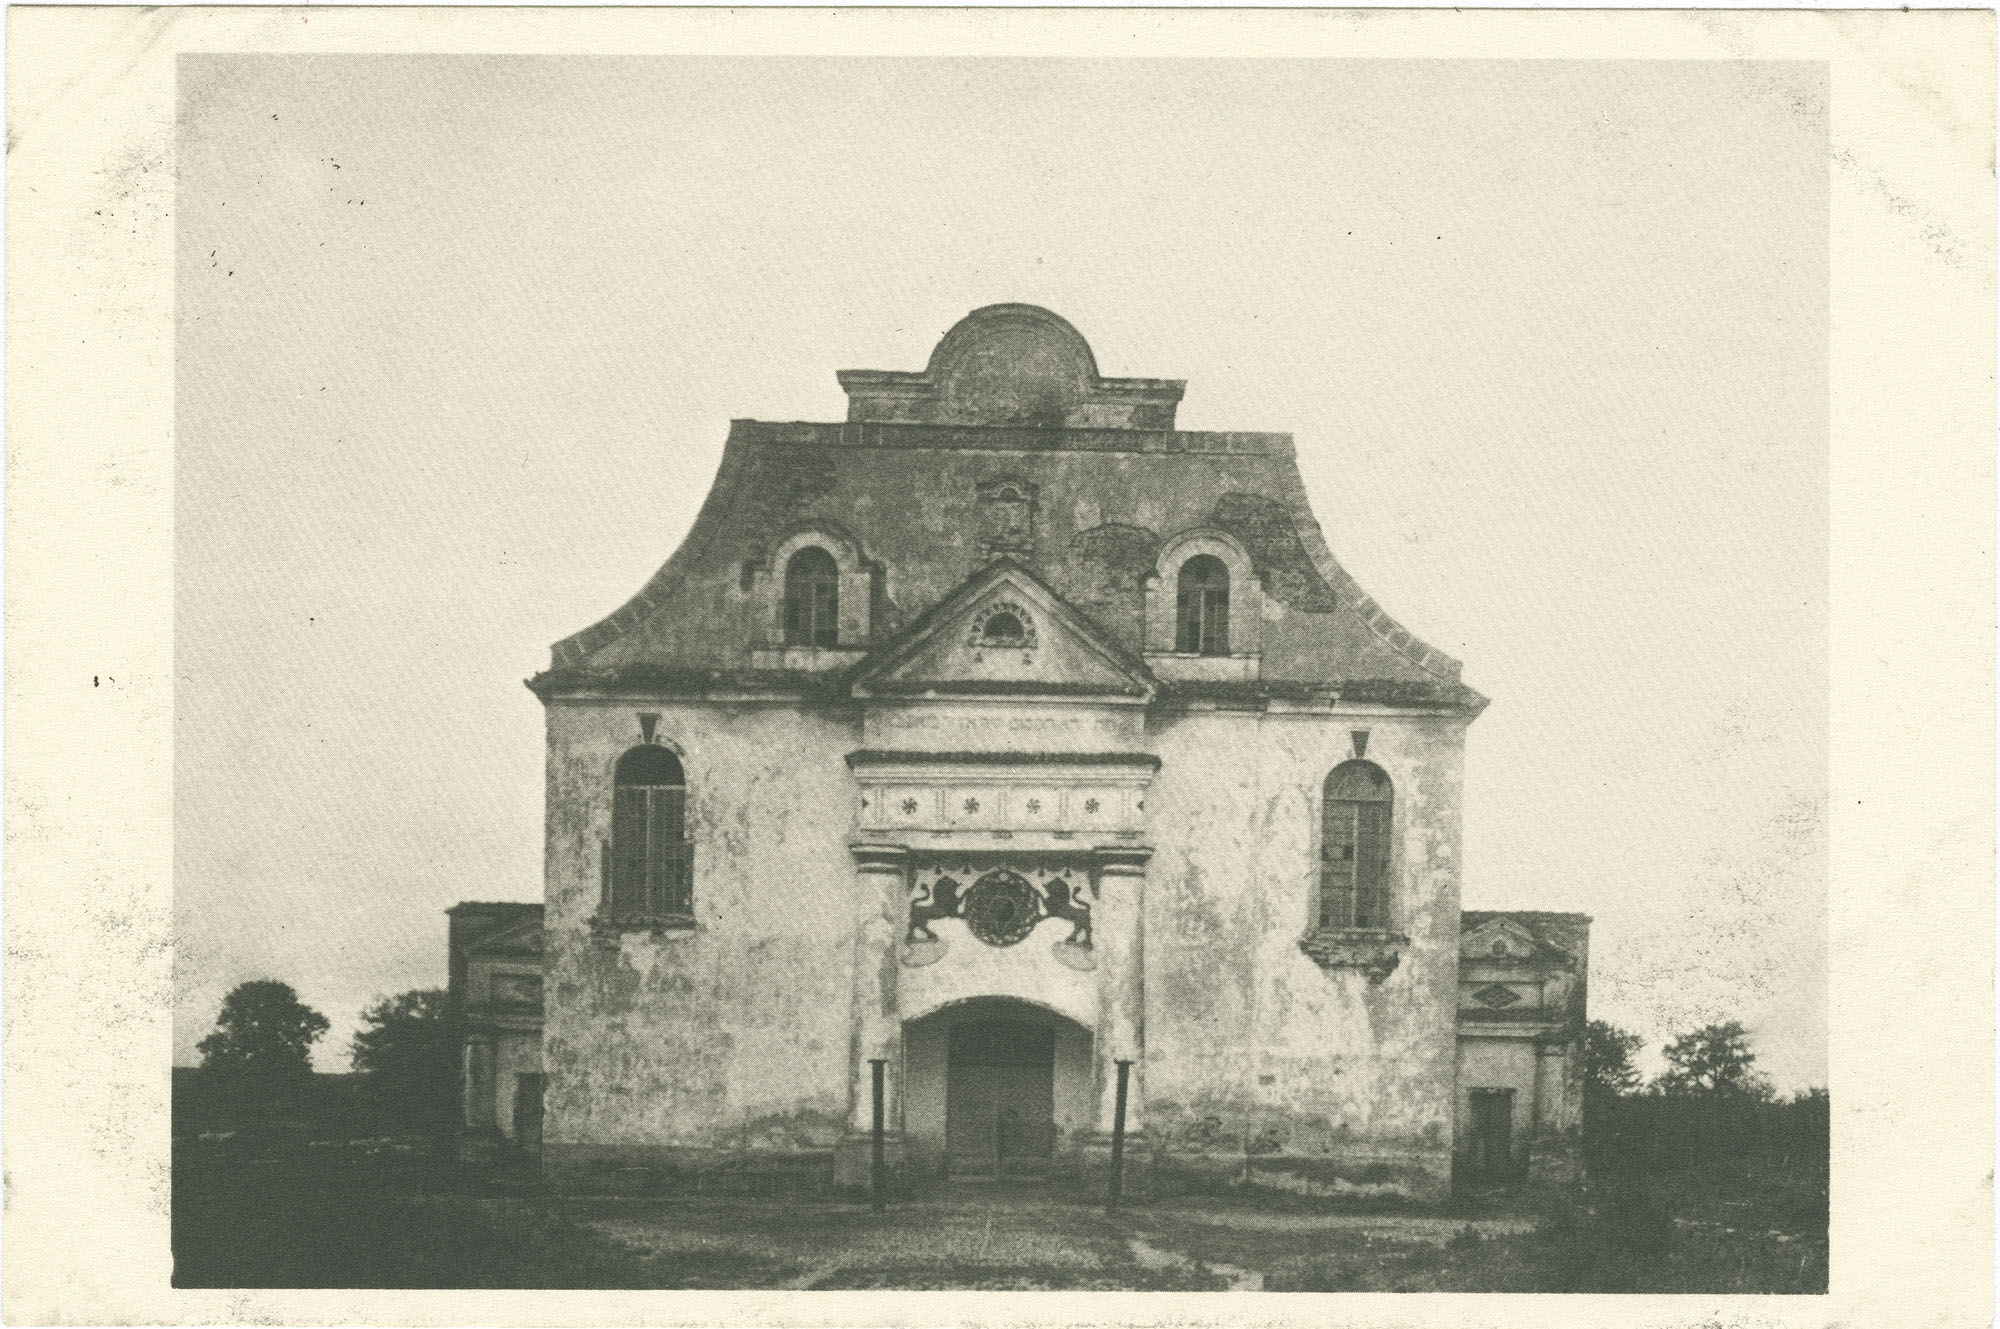 The synagogue in Orla, Białystok province.